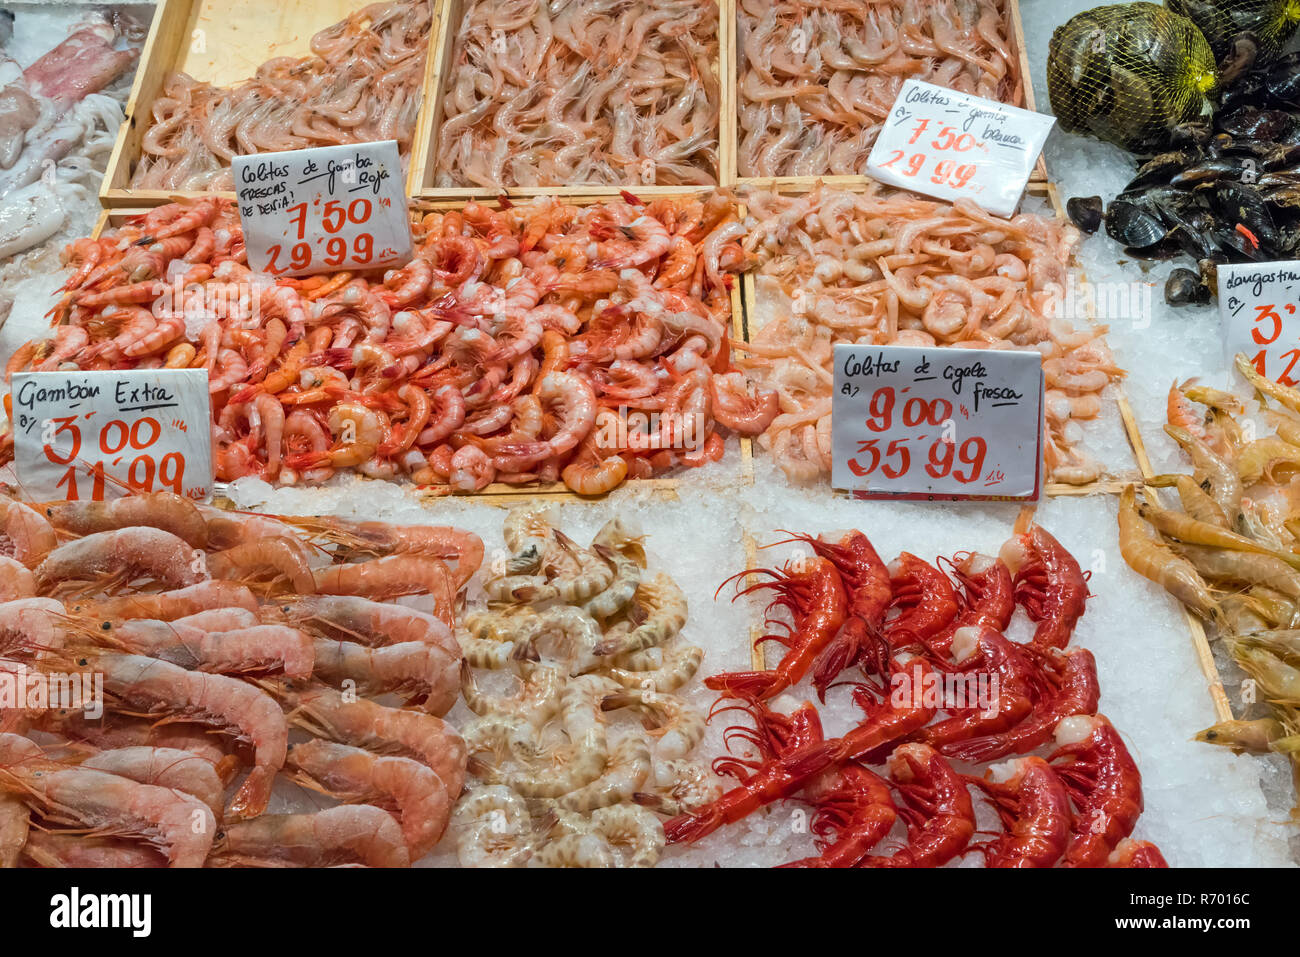 different types of shrimp for sale in a market - Stock Image